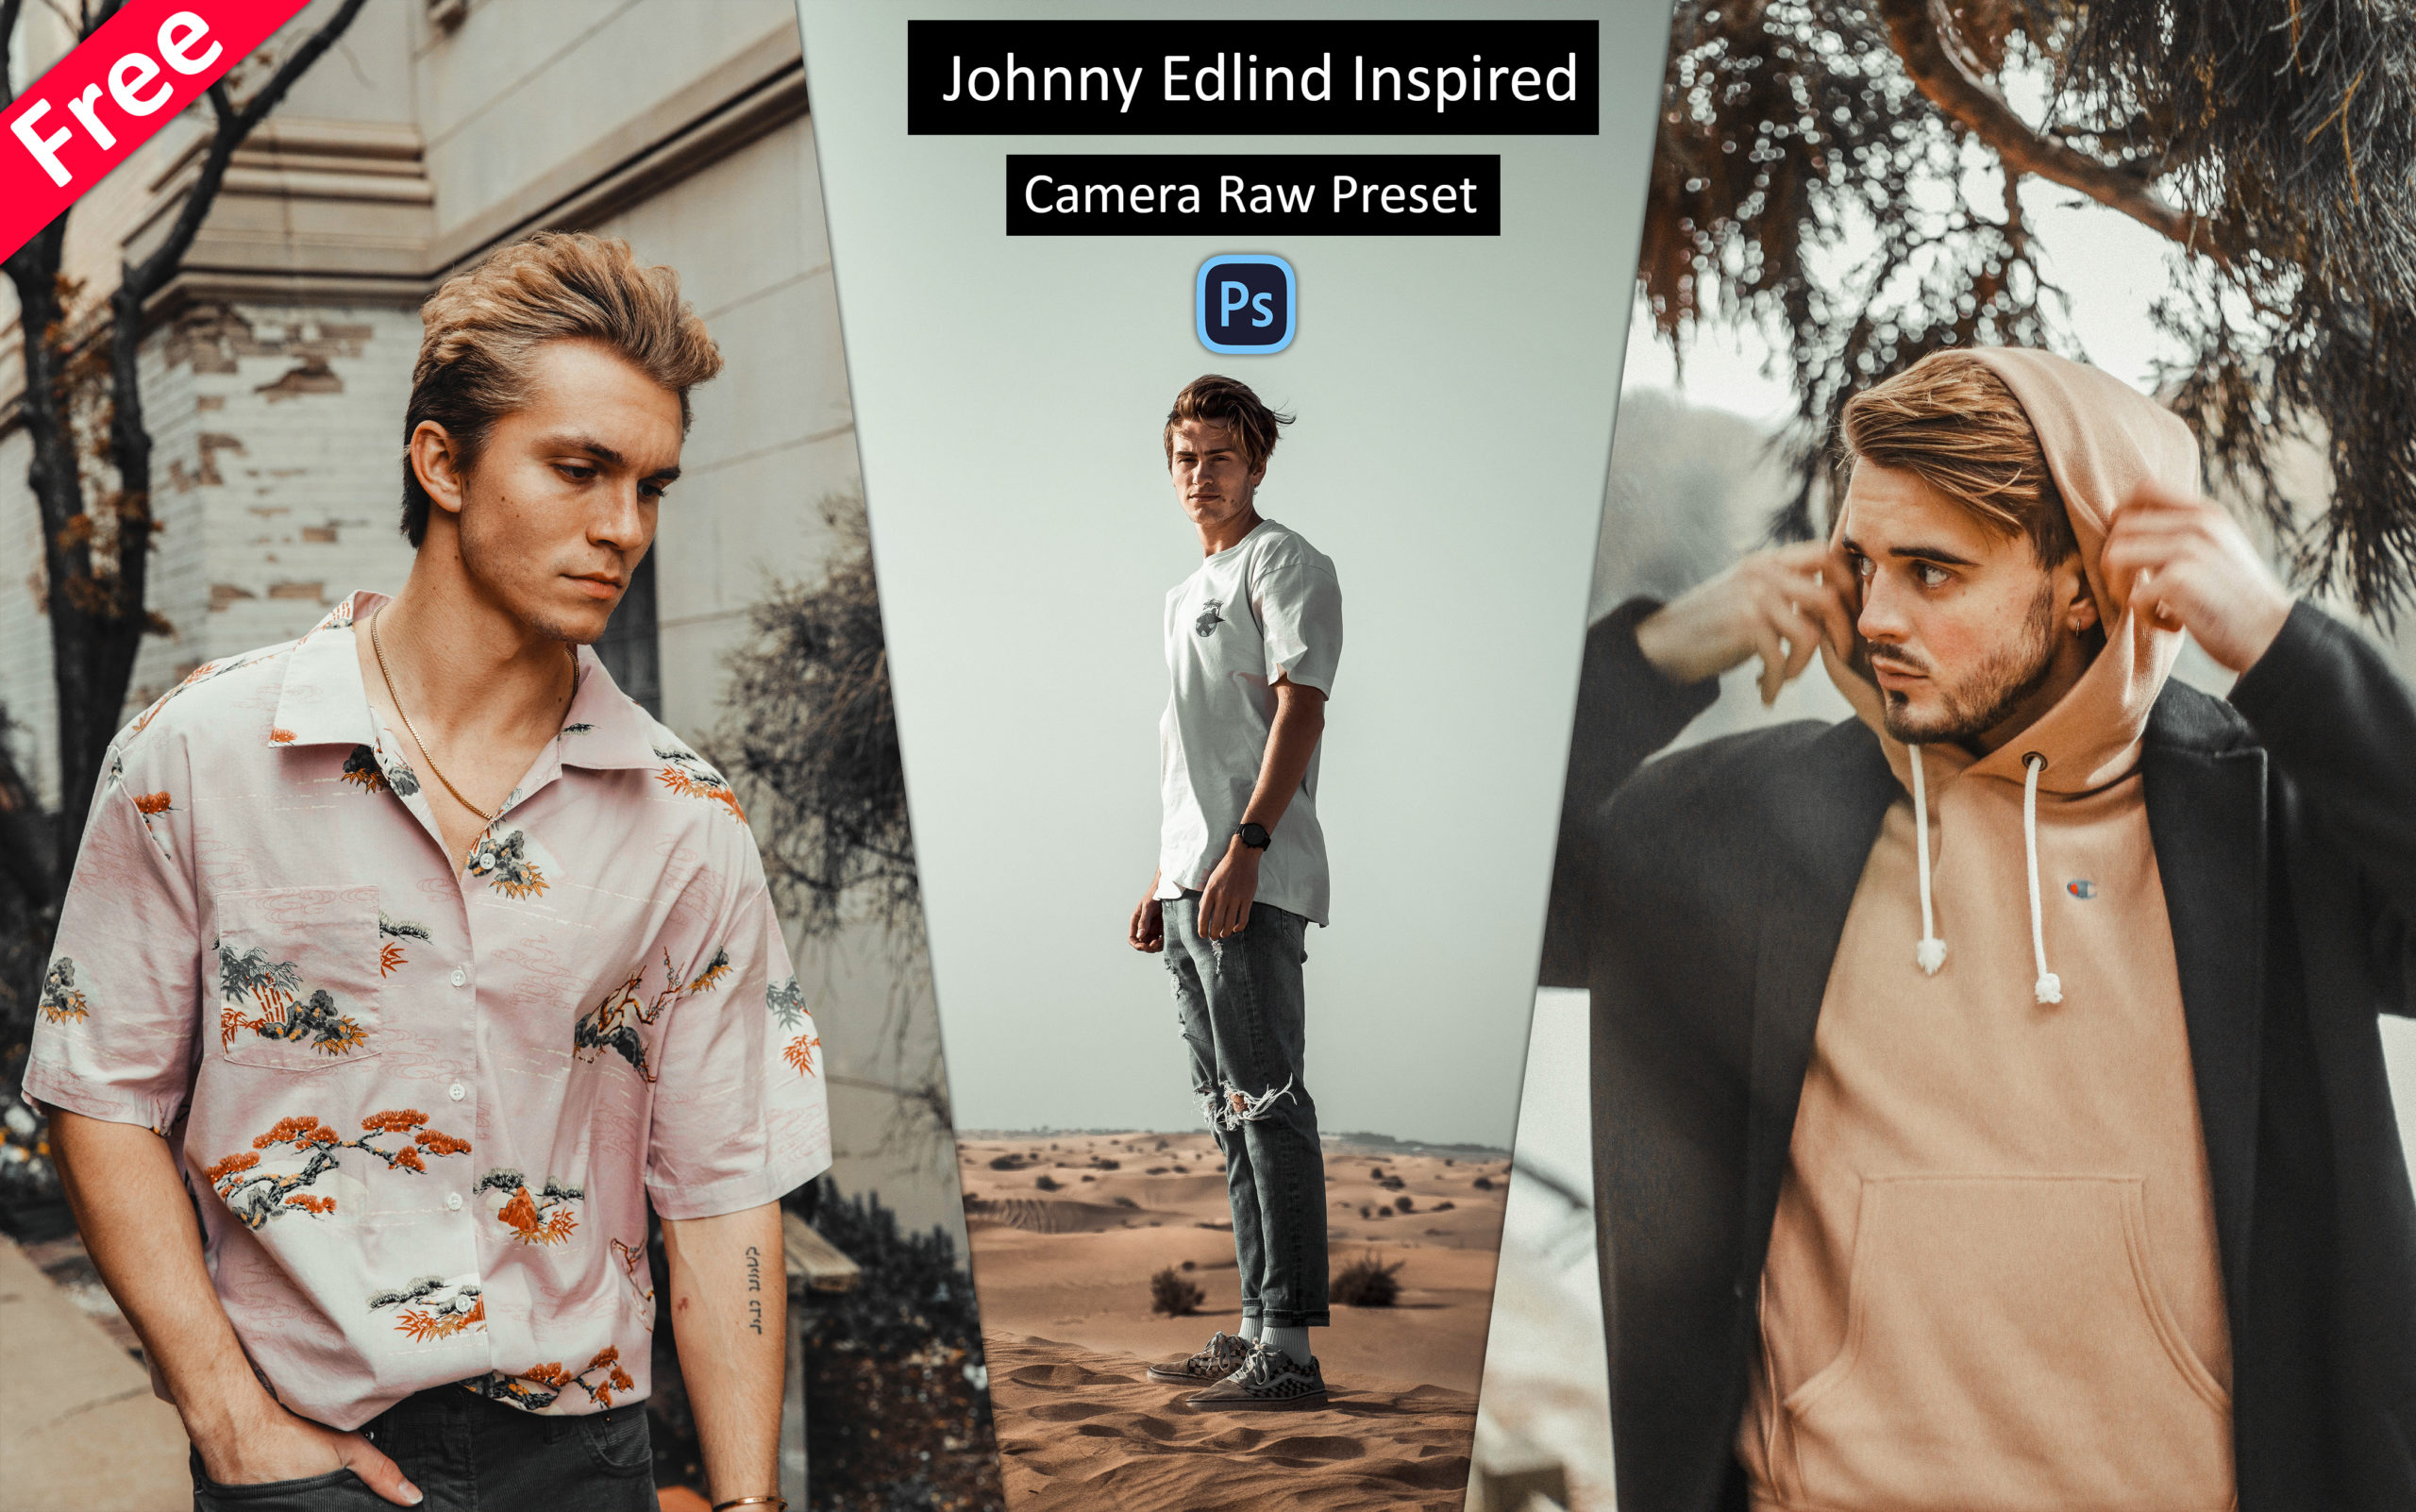 Download Johnny Edlind Inspired Camera Raw Presets for Free | How to Edit Photos Like @johnnyedlind in Photoshop